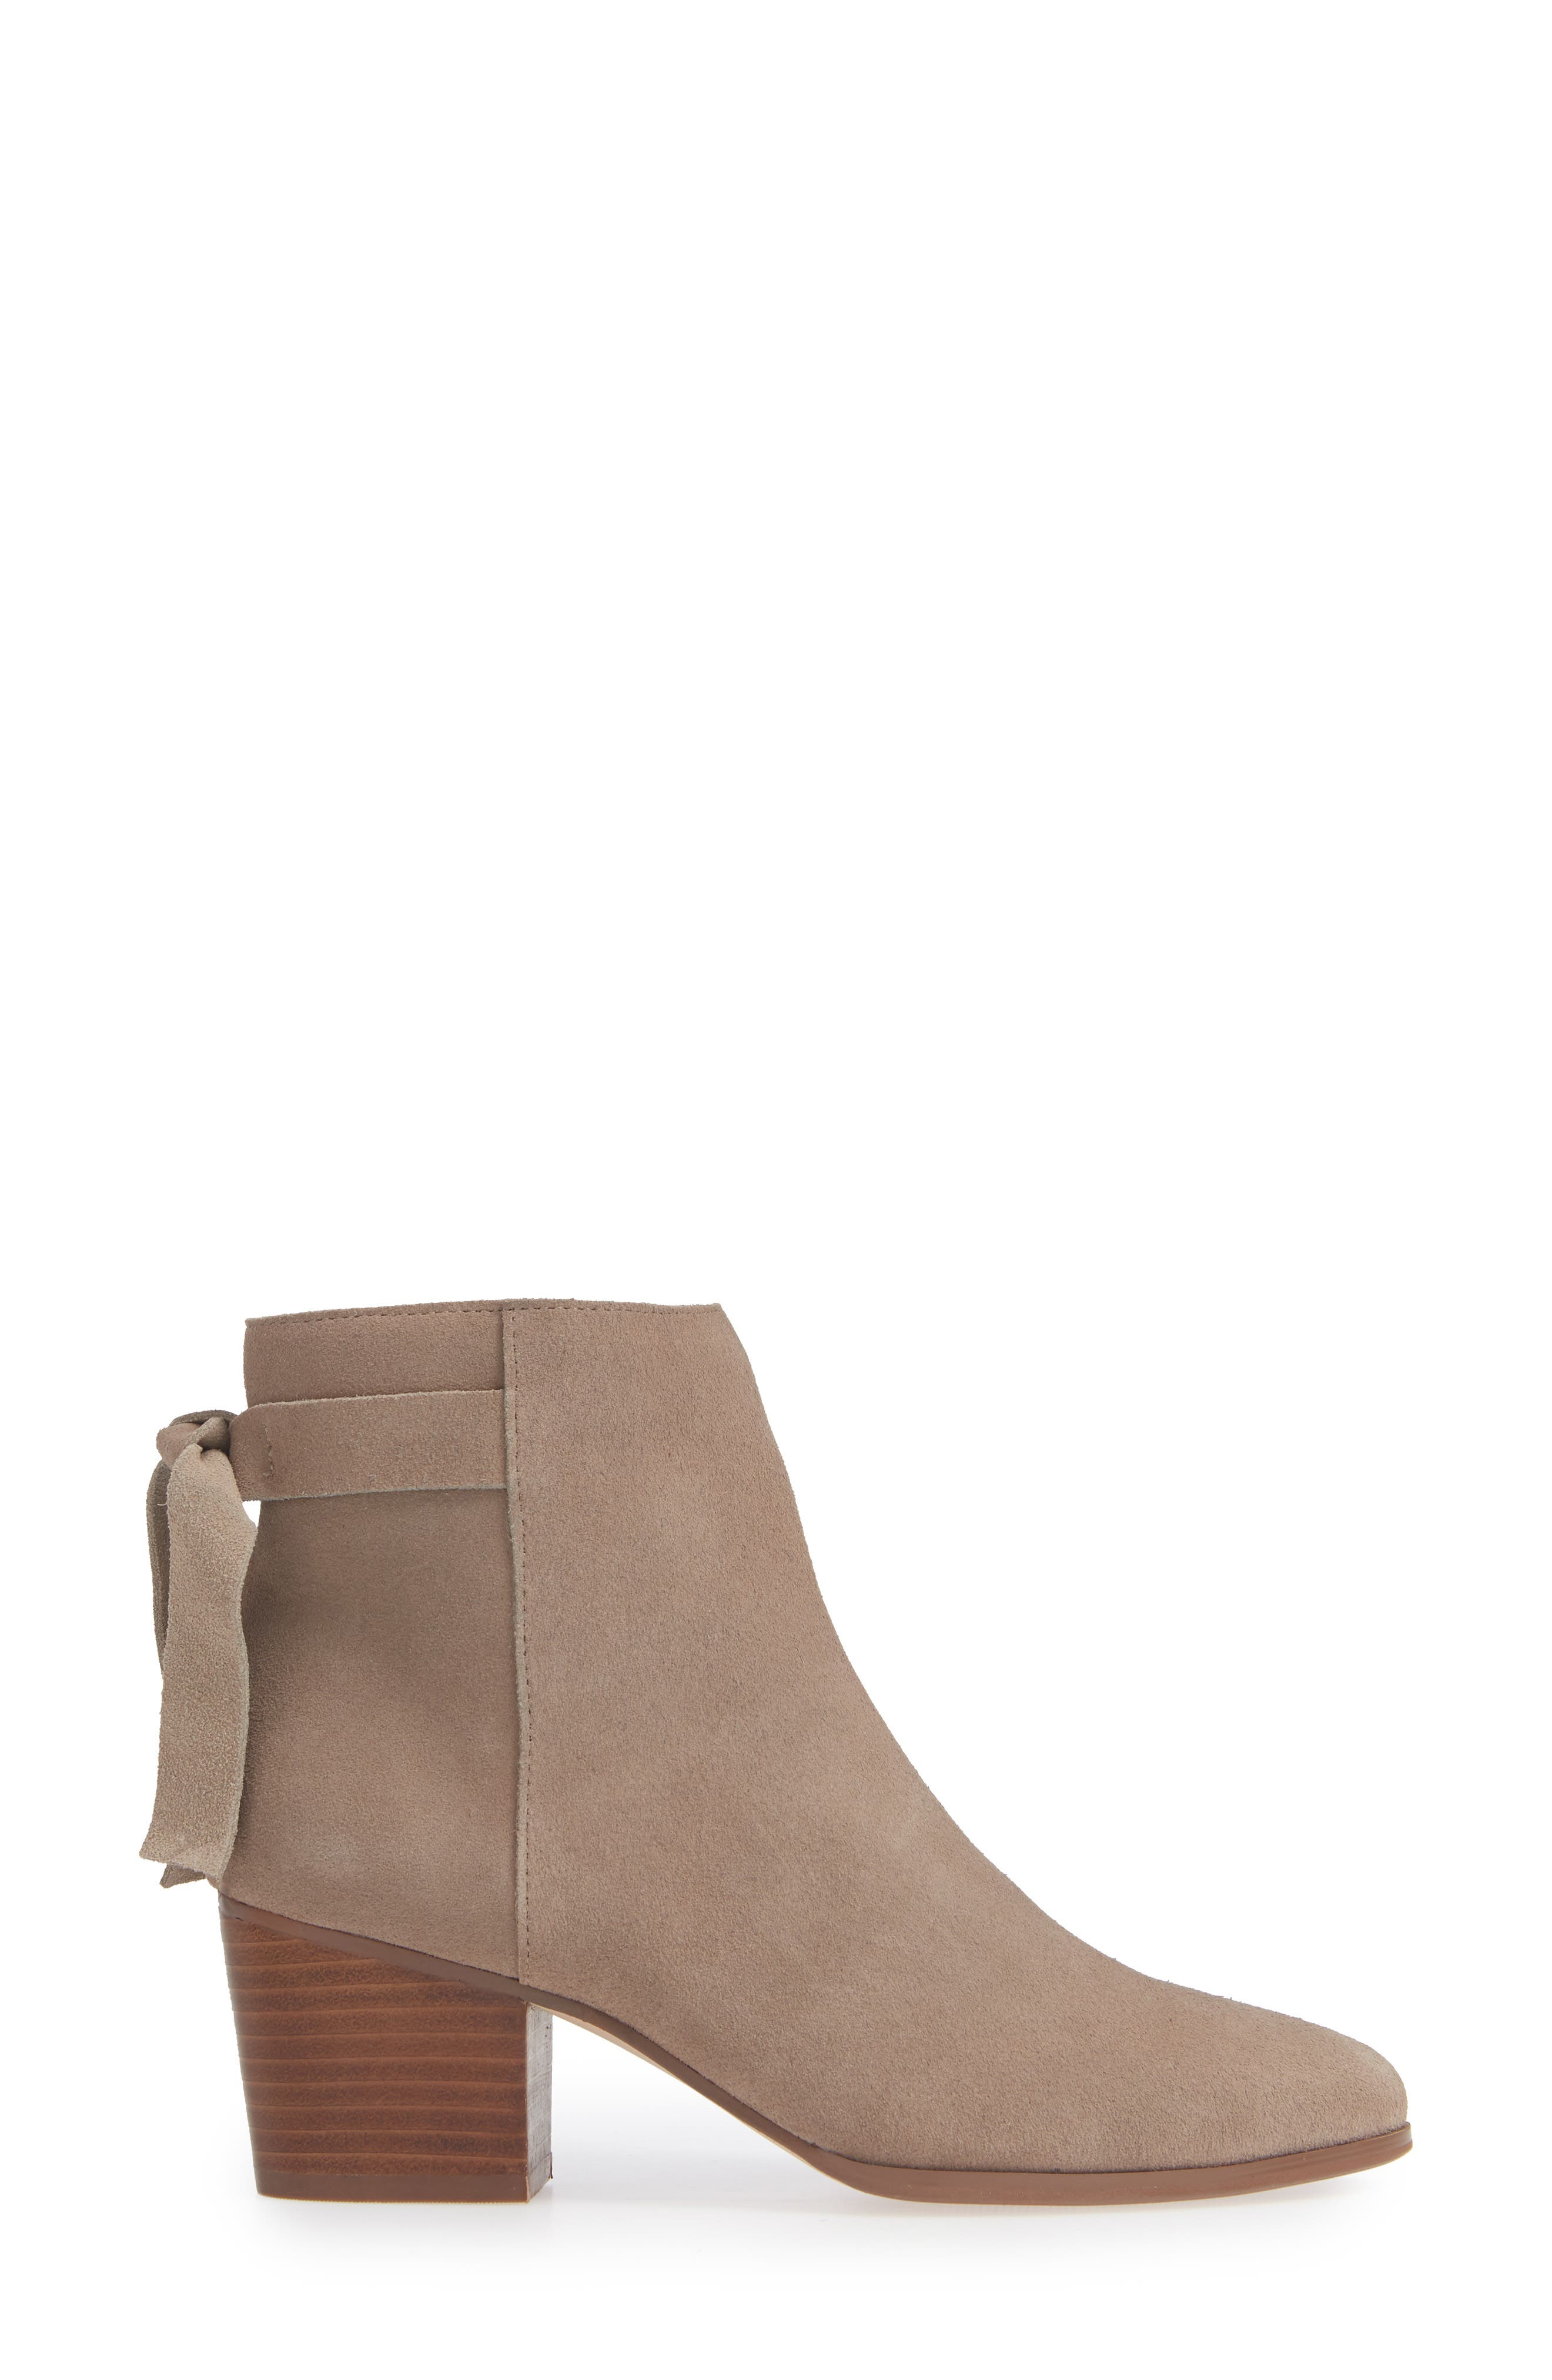 Rhilynn Bootie,                             Alternate thumbnail 3, color,                             FALL TAUPE SUEDE